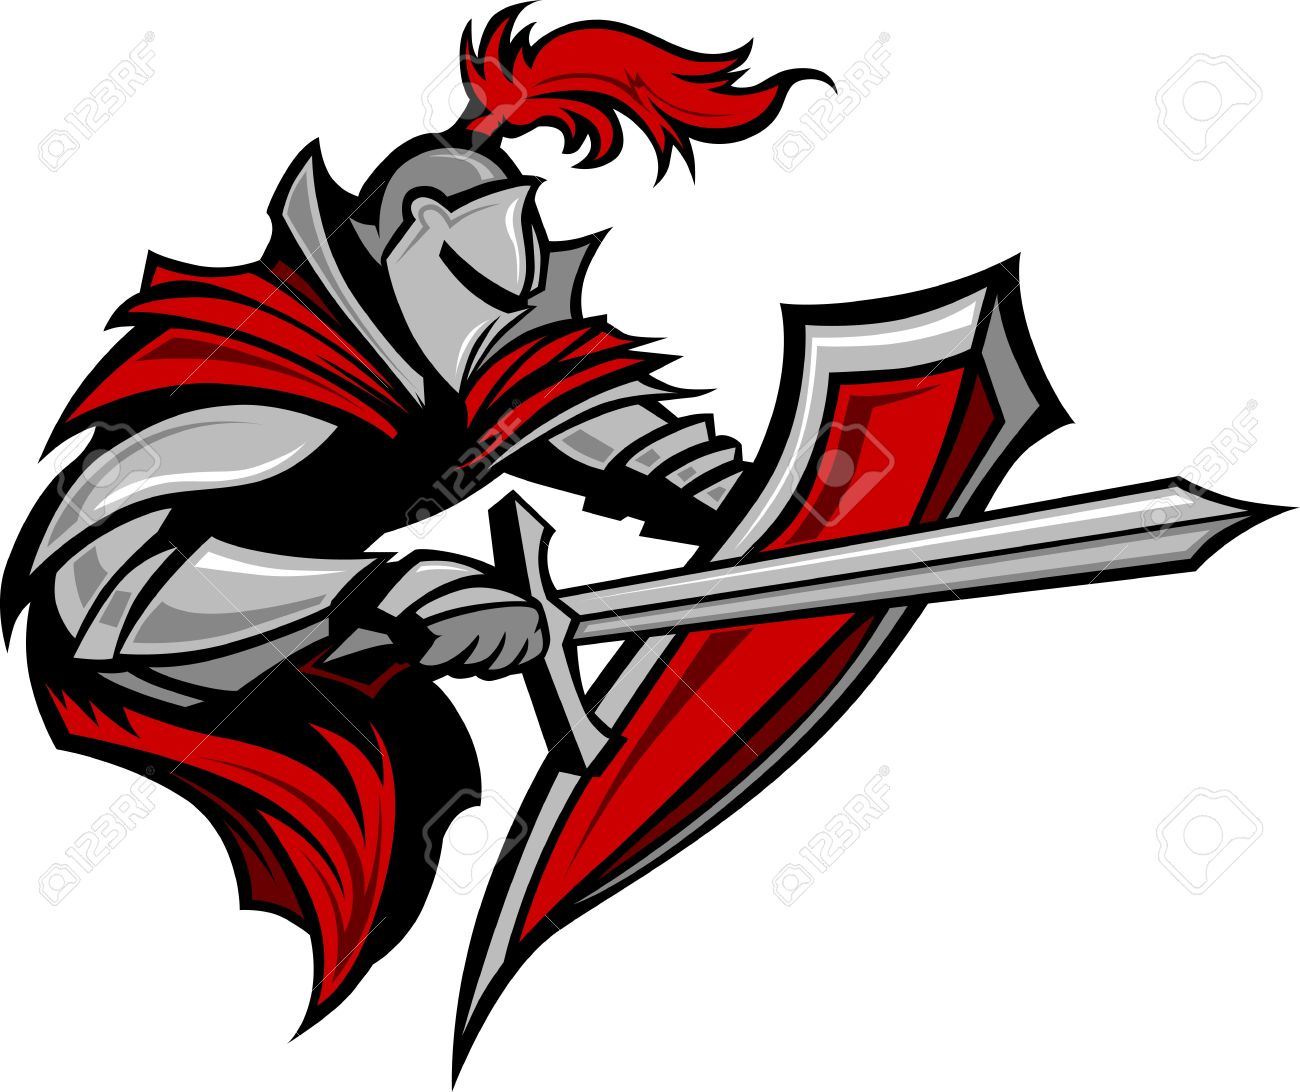 Warrior or Medieval Knight Vector Mascot wearing Armor - 10963541